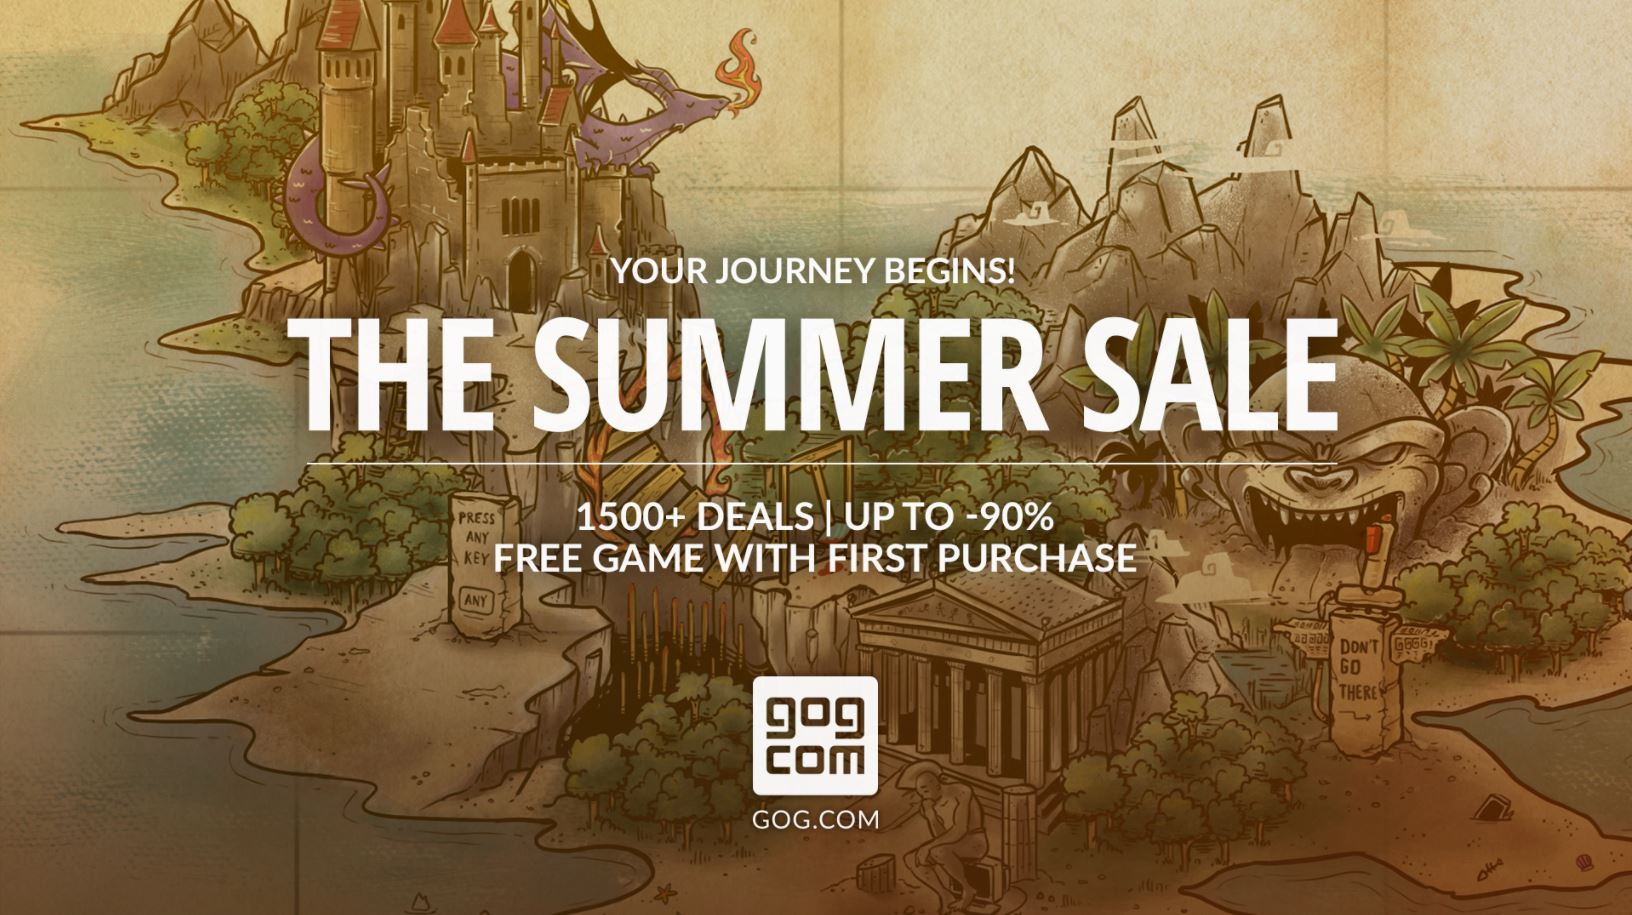 GOG.com Launches Summer Sale - Check Out The Escapist's Picks